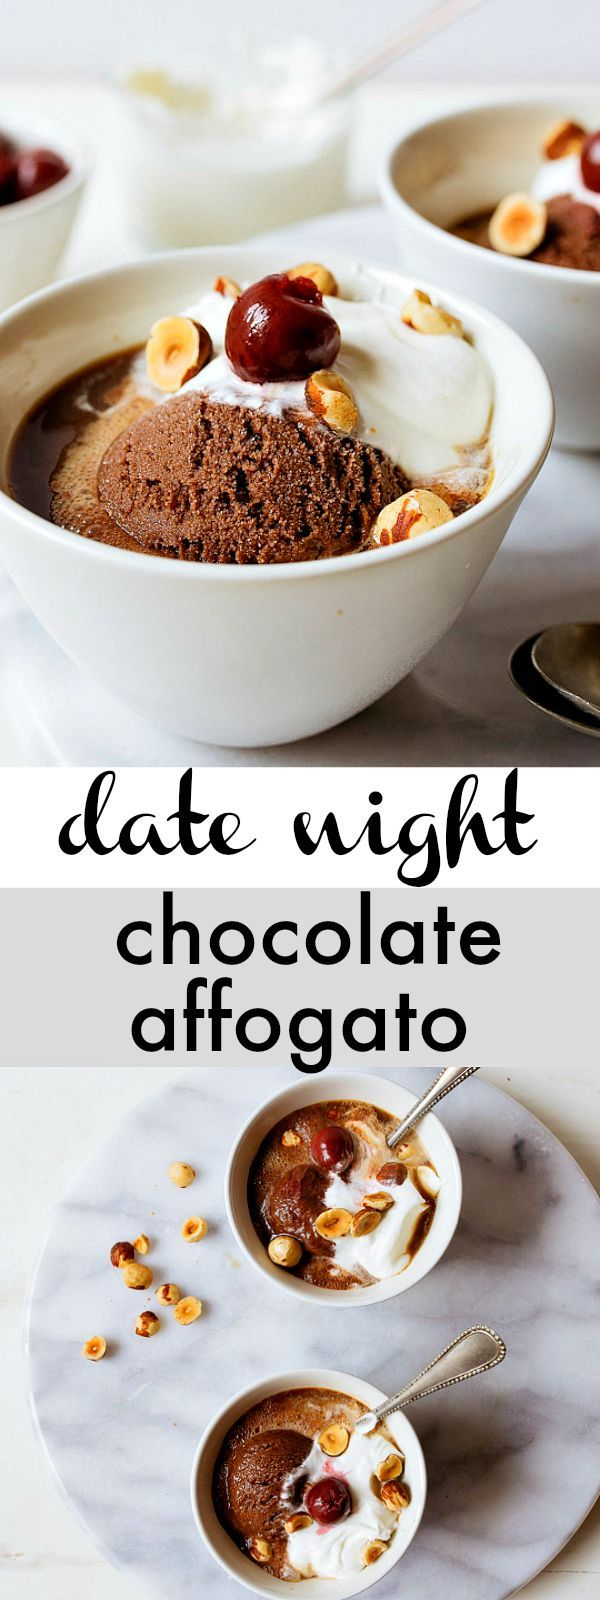 Hazelnut Mocha Affogato for Two. The best coffee dessert for two. Affogato is a shot of strong coffee (or espresso) poured over a scoop of ice cream. The hot coffee melts the ice cream slightly, and it's everything you need in life: caffeine plus sugar, hot plus cold. Amen. #coffee #affogato #hazelnut #mocha